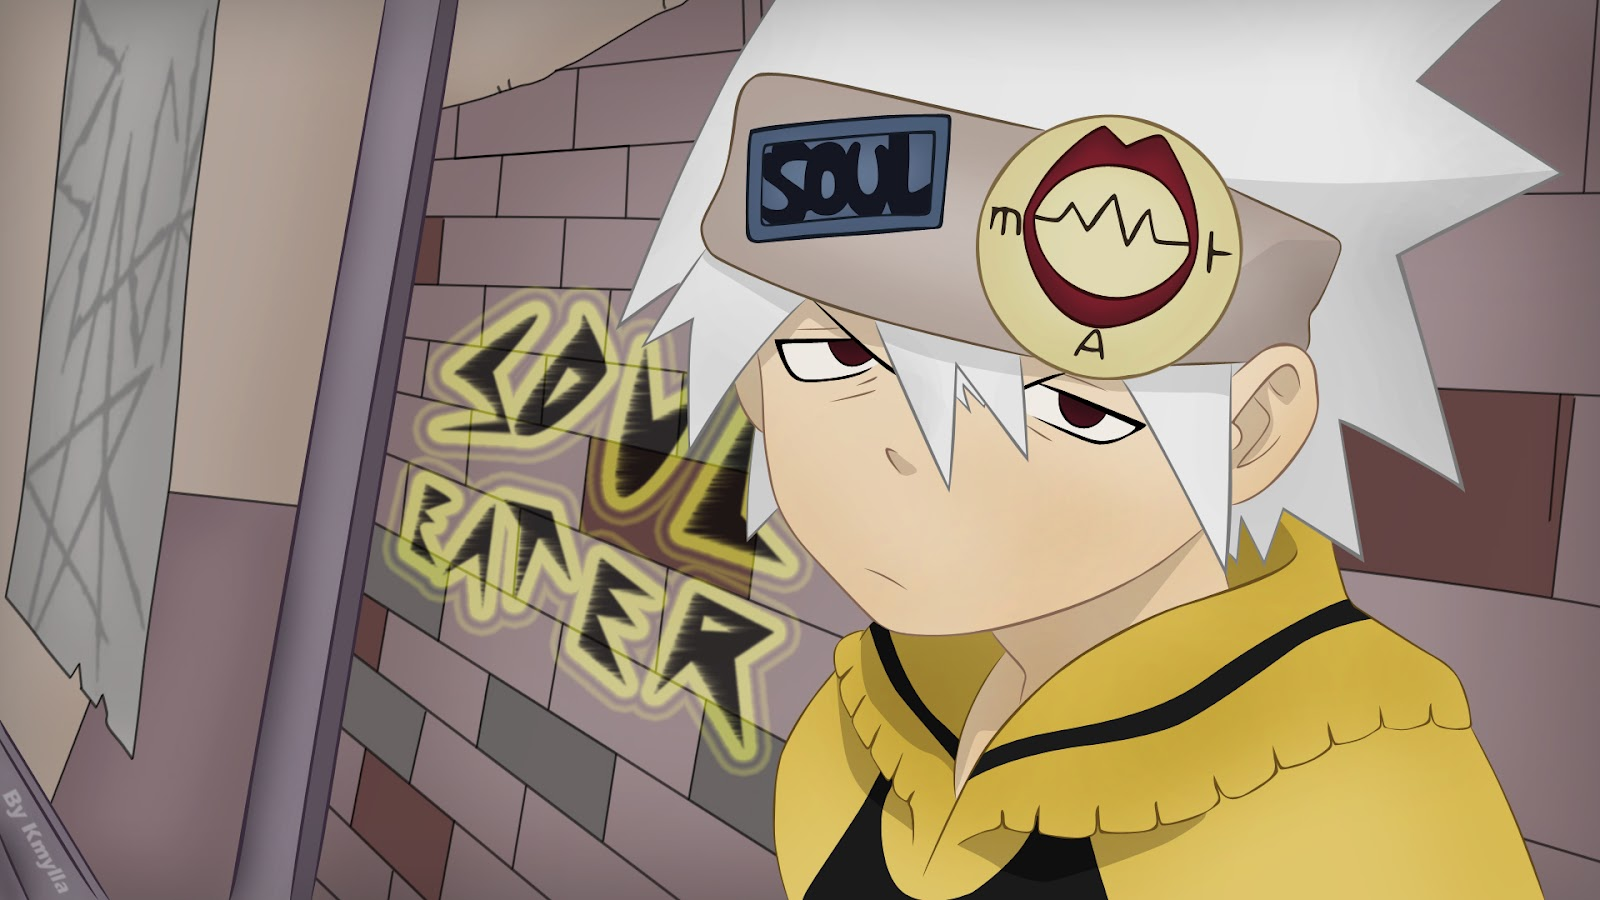 Soul eater characters with pictures Soul Eater Characters List w/ Photos - Ranker